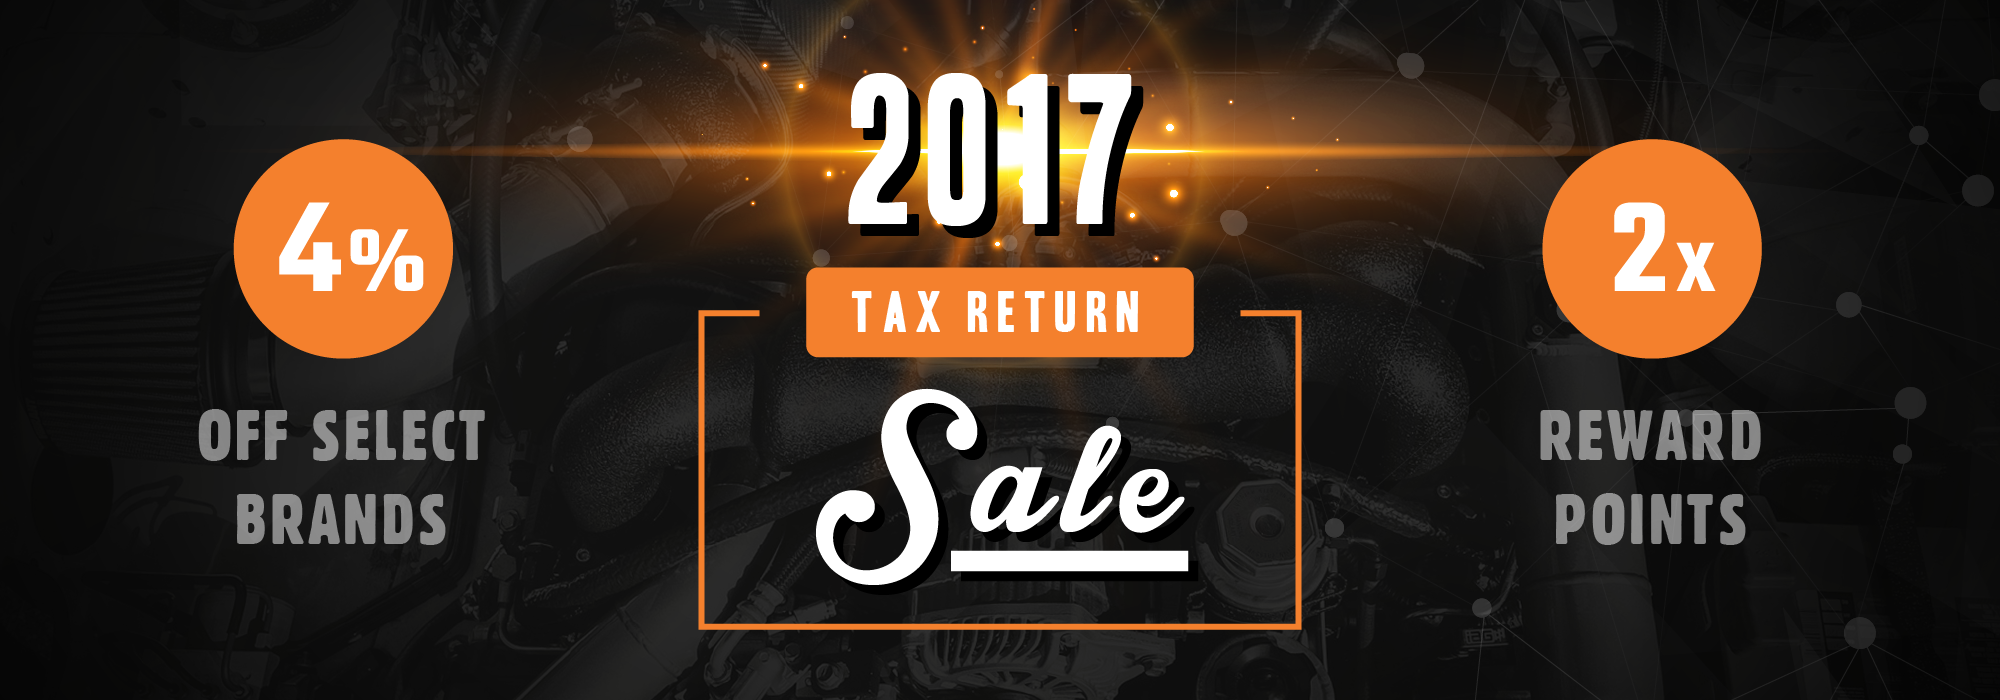 2017-tax-return-sale-home-page-update.png